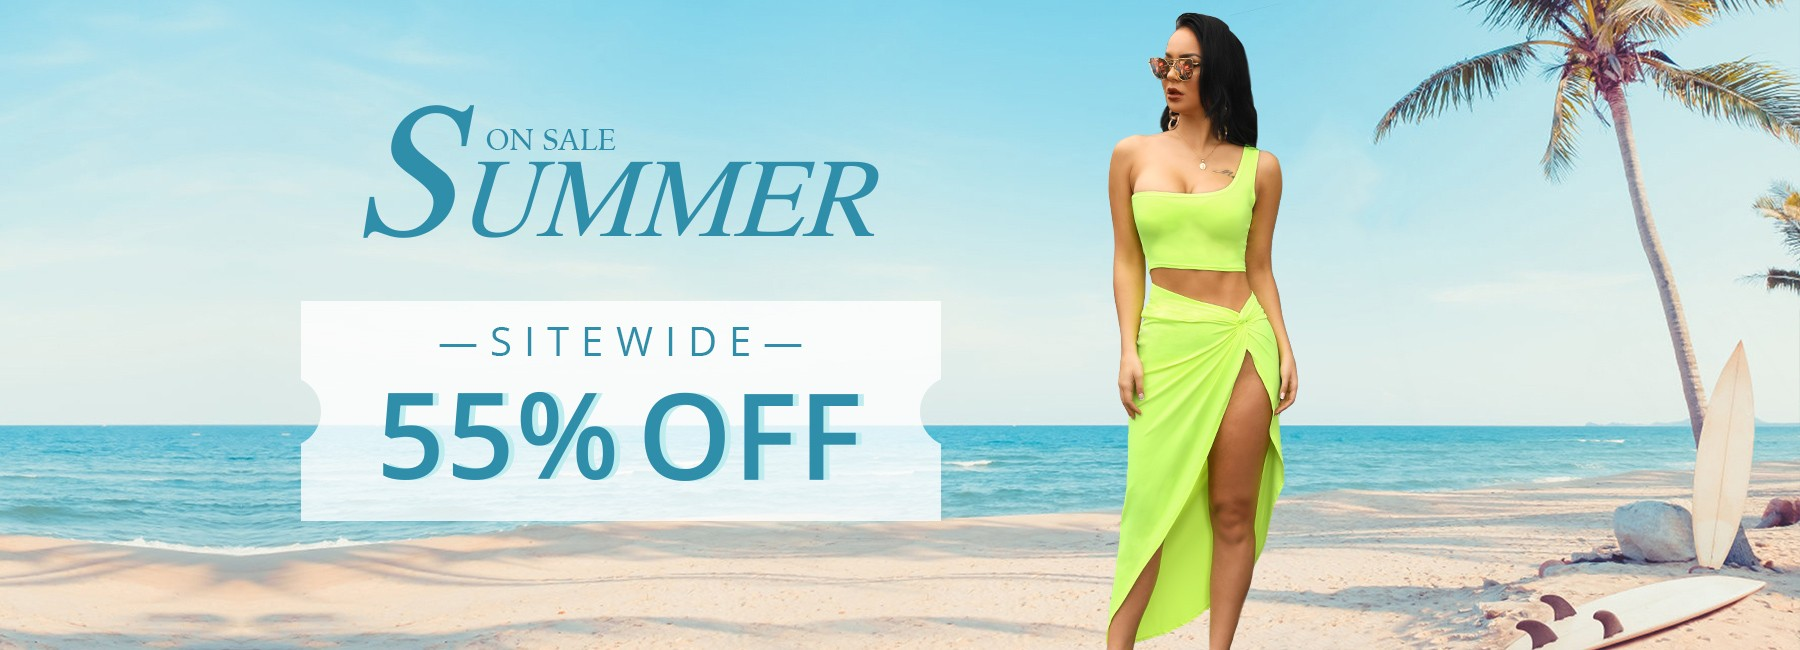 Easy Summer Sale